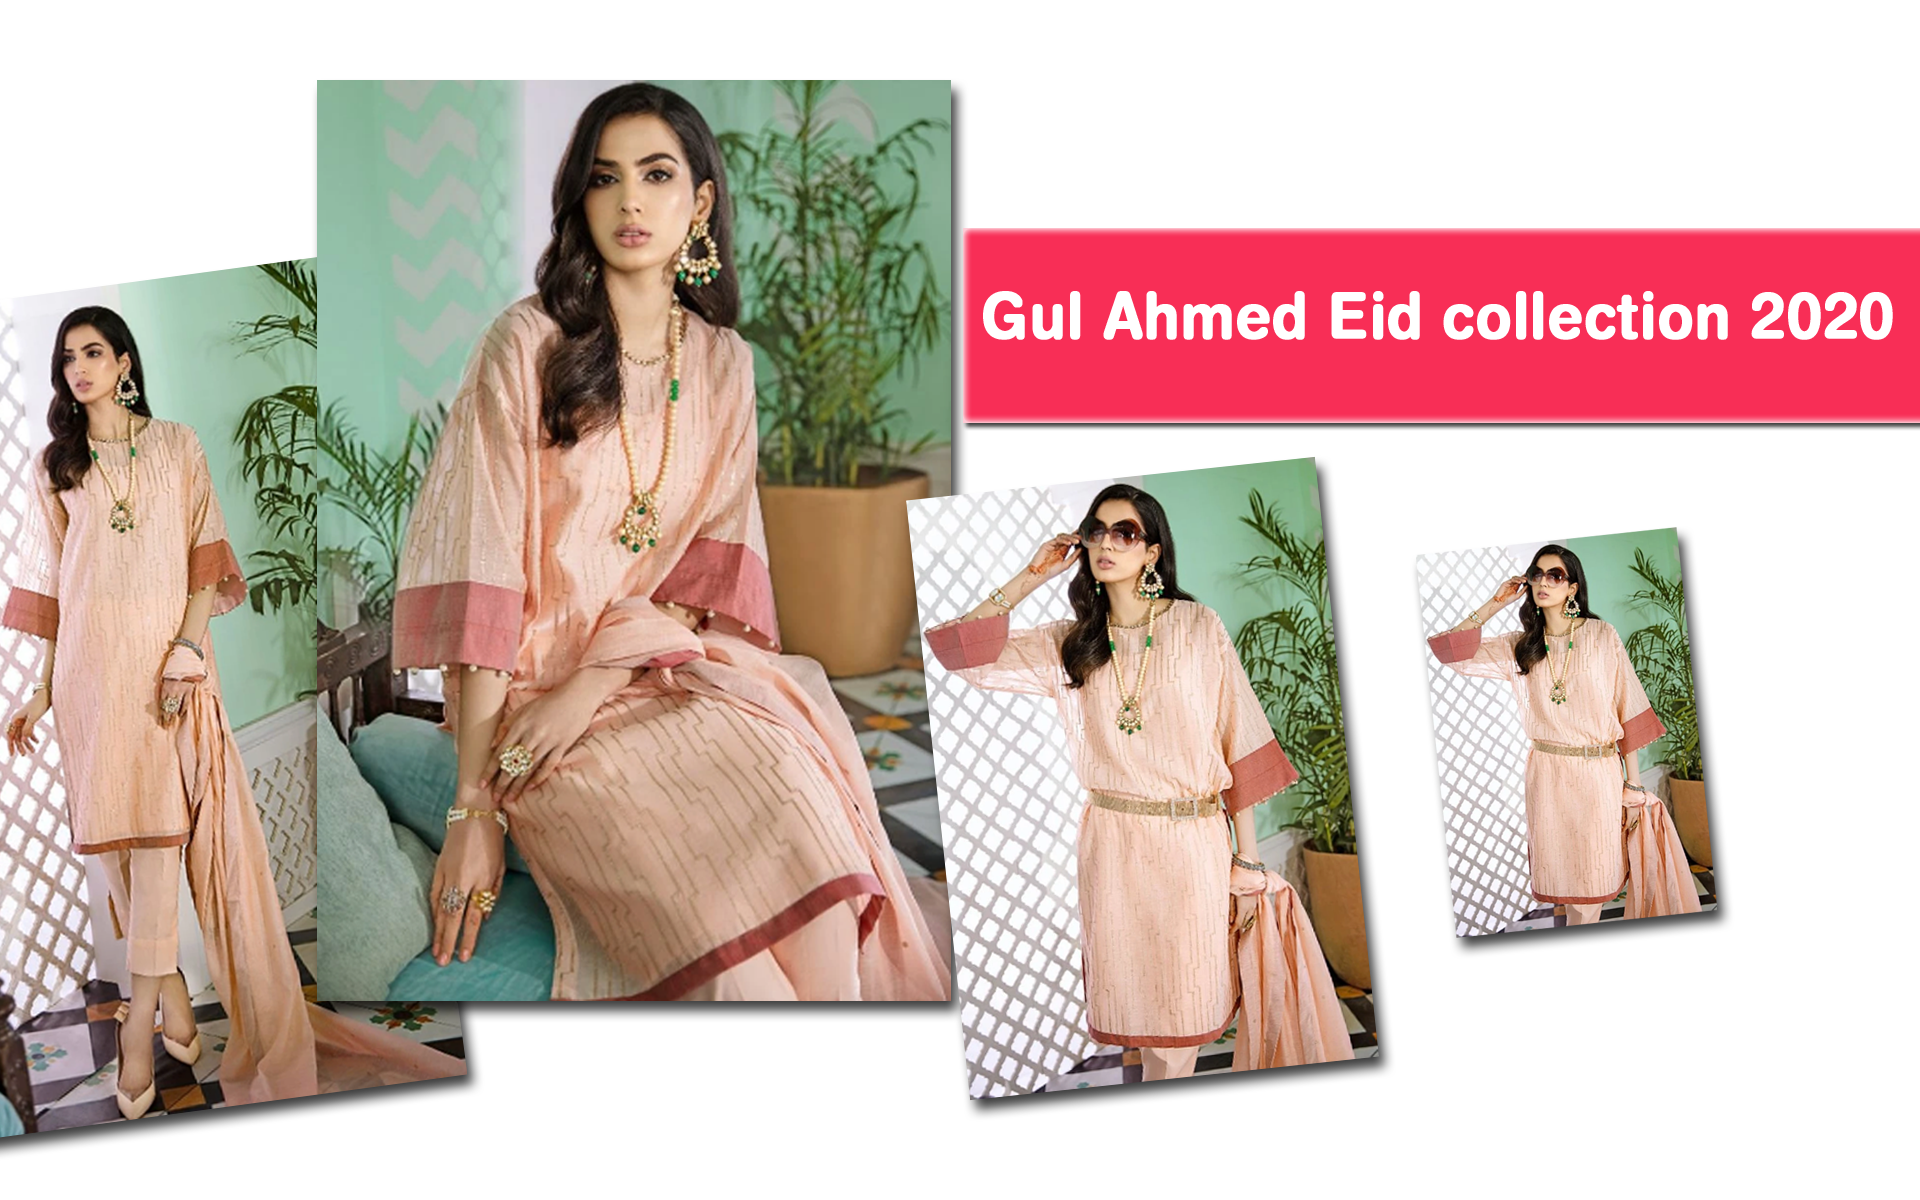 The most awaited Gul Ahmed Eid collection 2020 is here